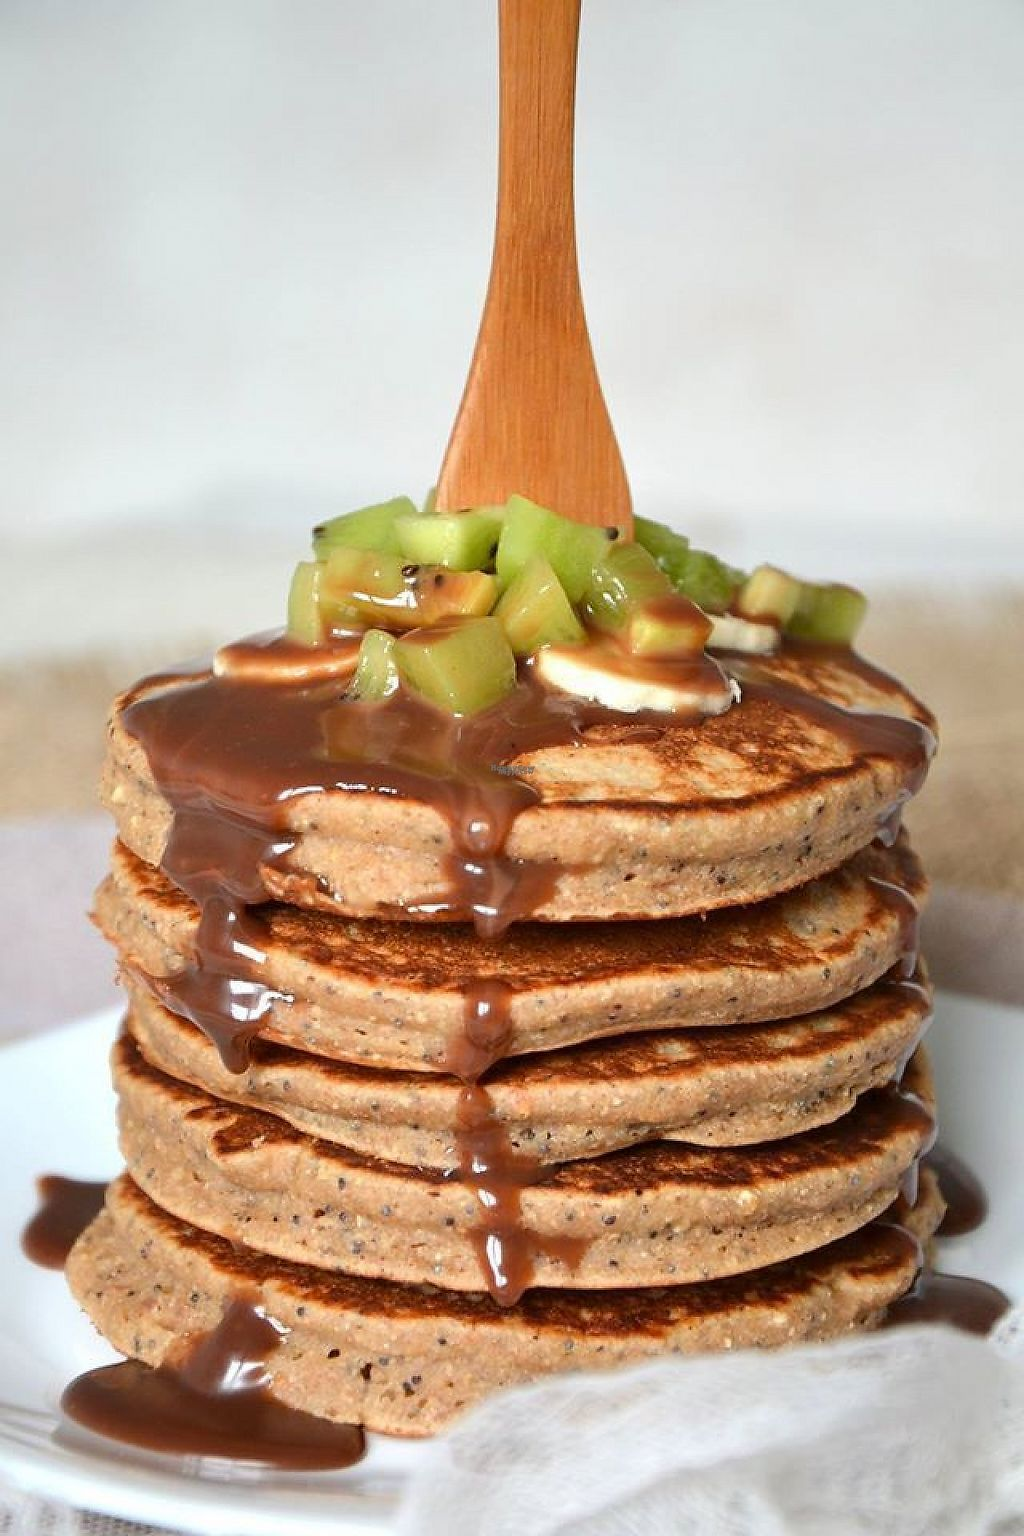 "Photo of La Vie Claire  by <a href=""/members/profile/community"">community</a> <br/>vegan pancakes  <br/> February 4, 2017  - <a href='/contact/abuse/image/68785/221830'>Report</a>"